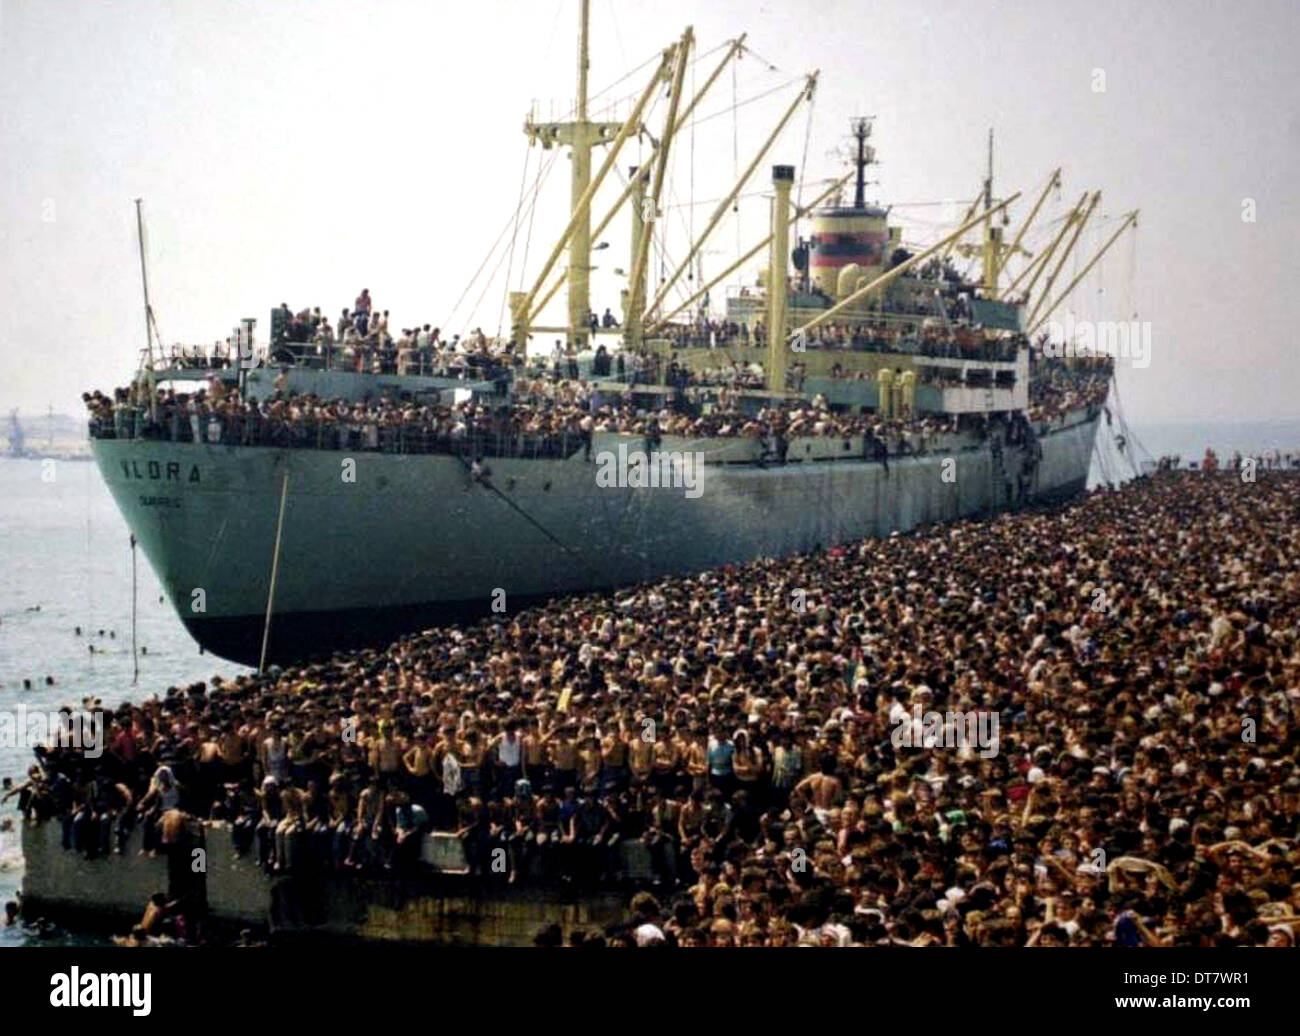 ALBANIAN MIGRANTS HIJACK SHIP LA NAVE DOLCE (2012) Stock Photo